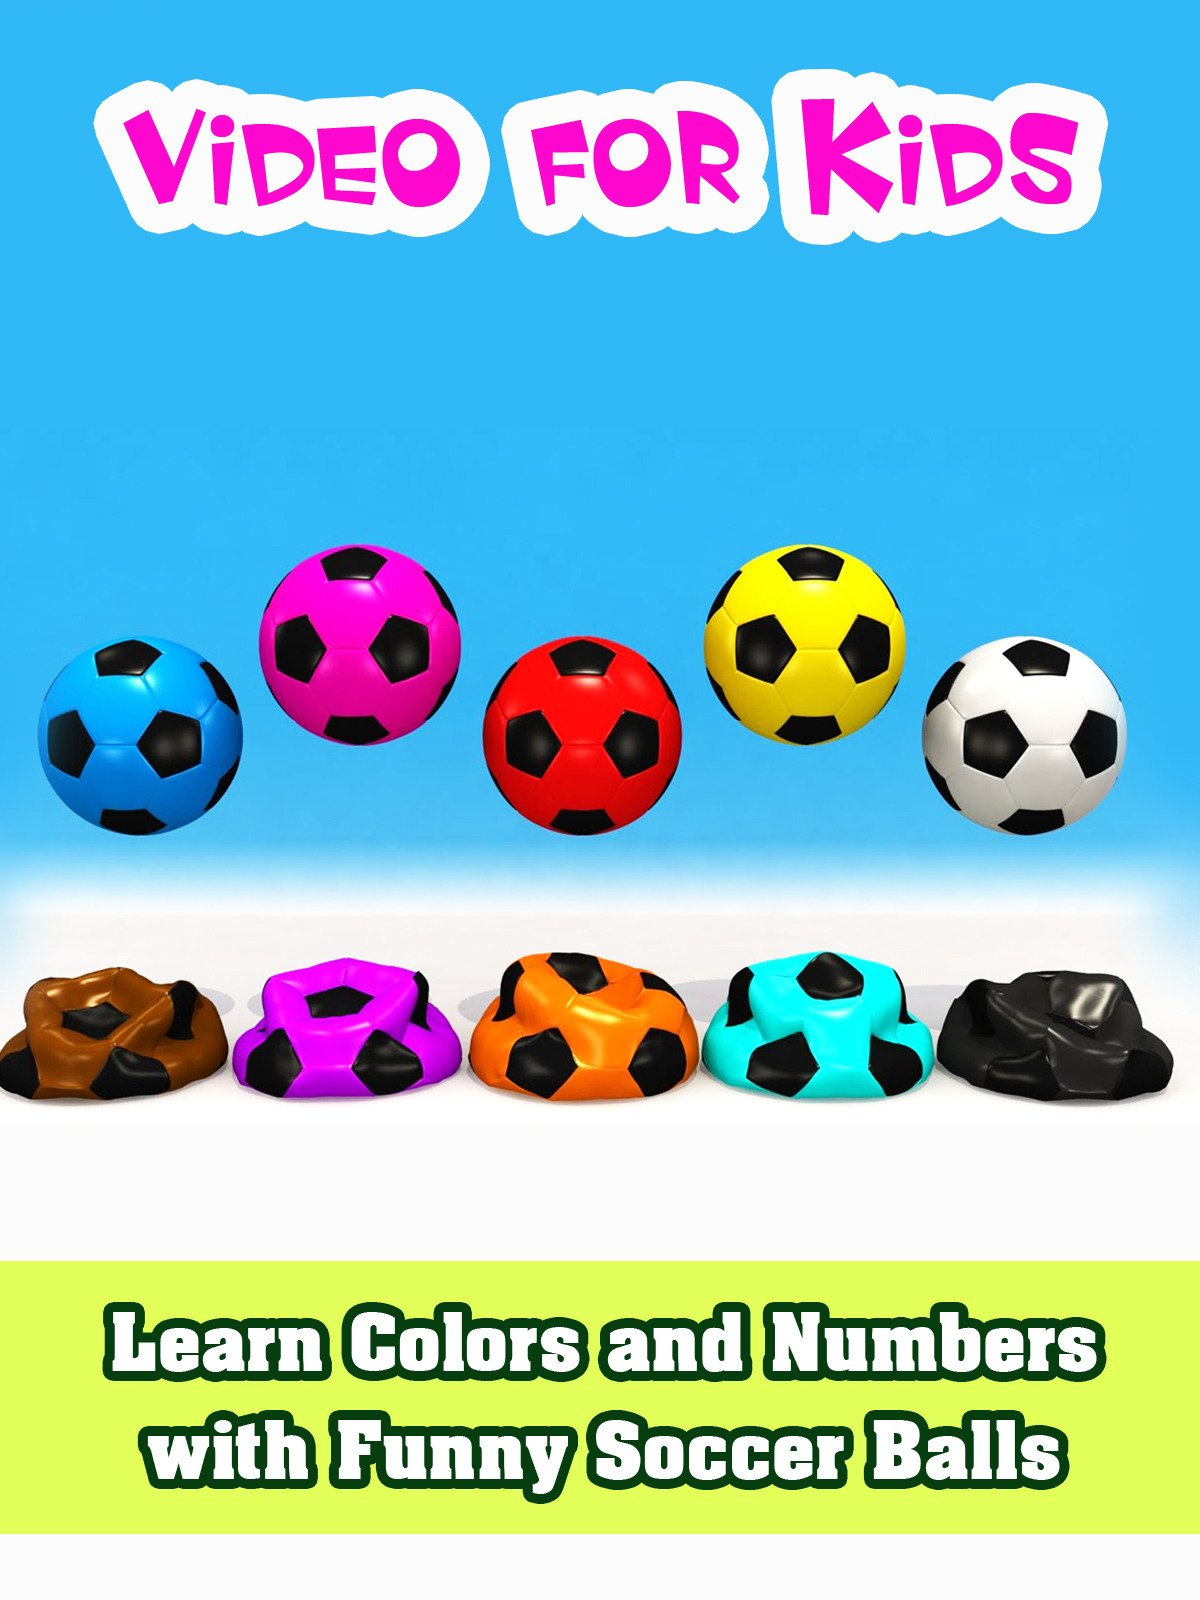 Learn Colors and Numbers with Funny Soccer Balls